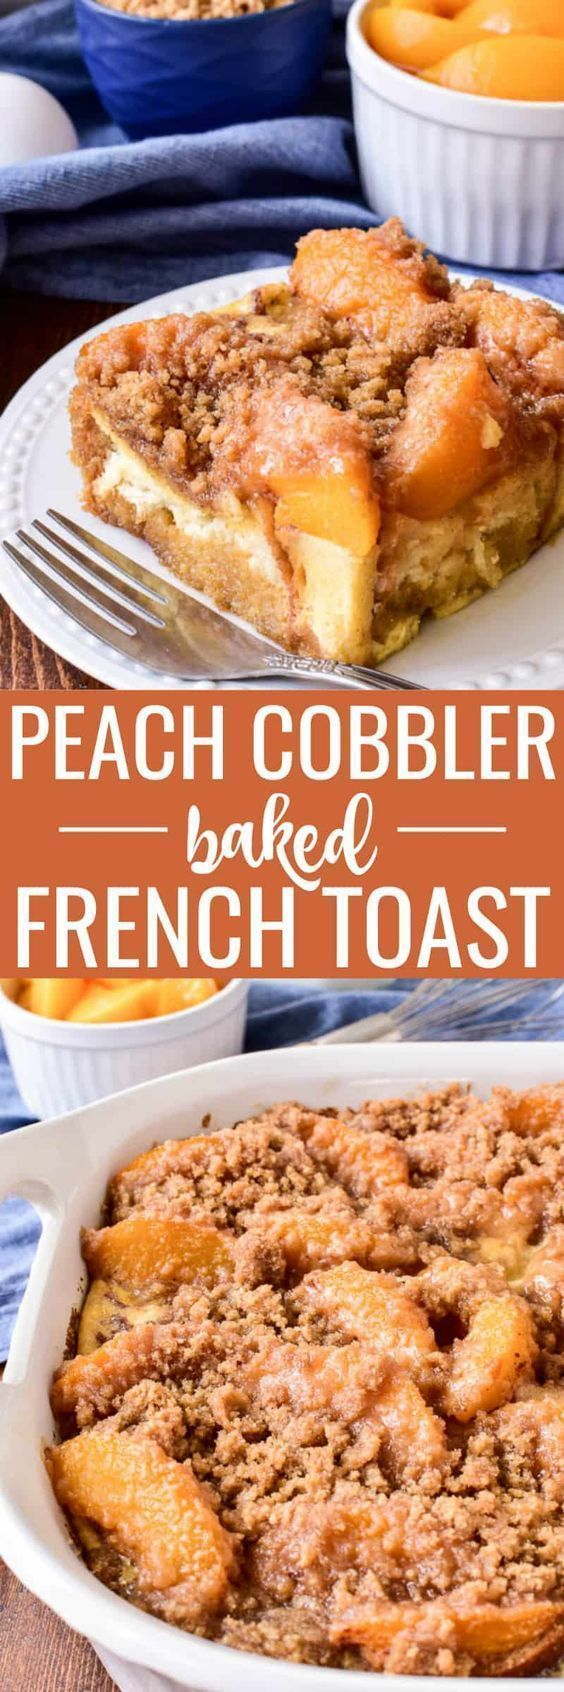 #crockpotfrenchtoast #cobbler #french #baked #peach #toastPeach Cobbler Baked French Toast Peach Cobbler Baked French Toast Peach Cobbler Baked French Toast #peachcobblercheesecake #crockpotfrenchtoast #cobbler #french #baked #peach #toastPeach Cobbler Baked French Toast Peach Cobbler Baked French Toast Peach Cobbler Baked French Toast #peachcobblercheesecake